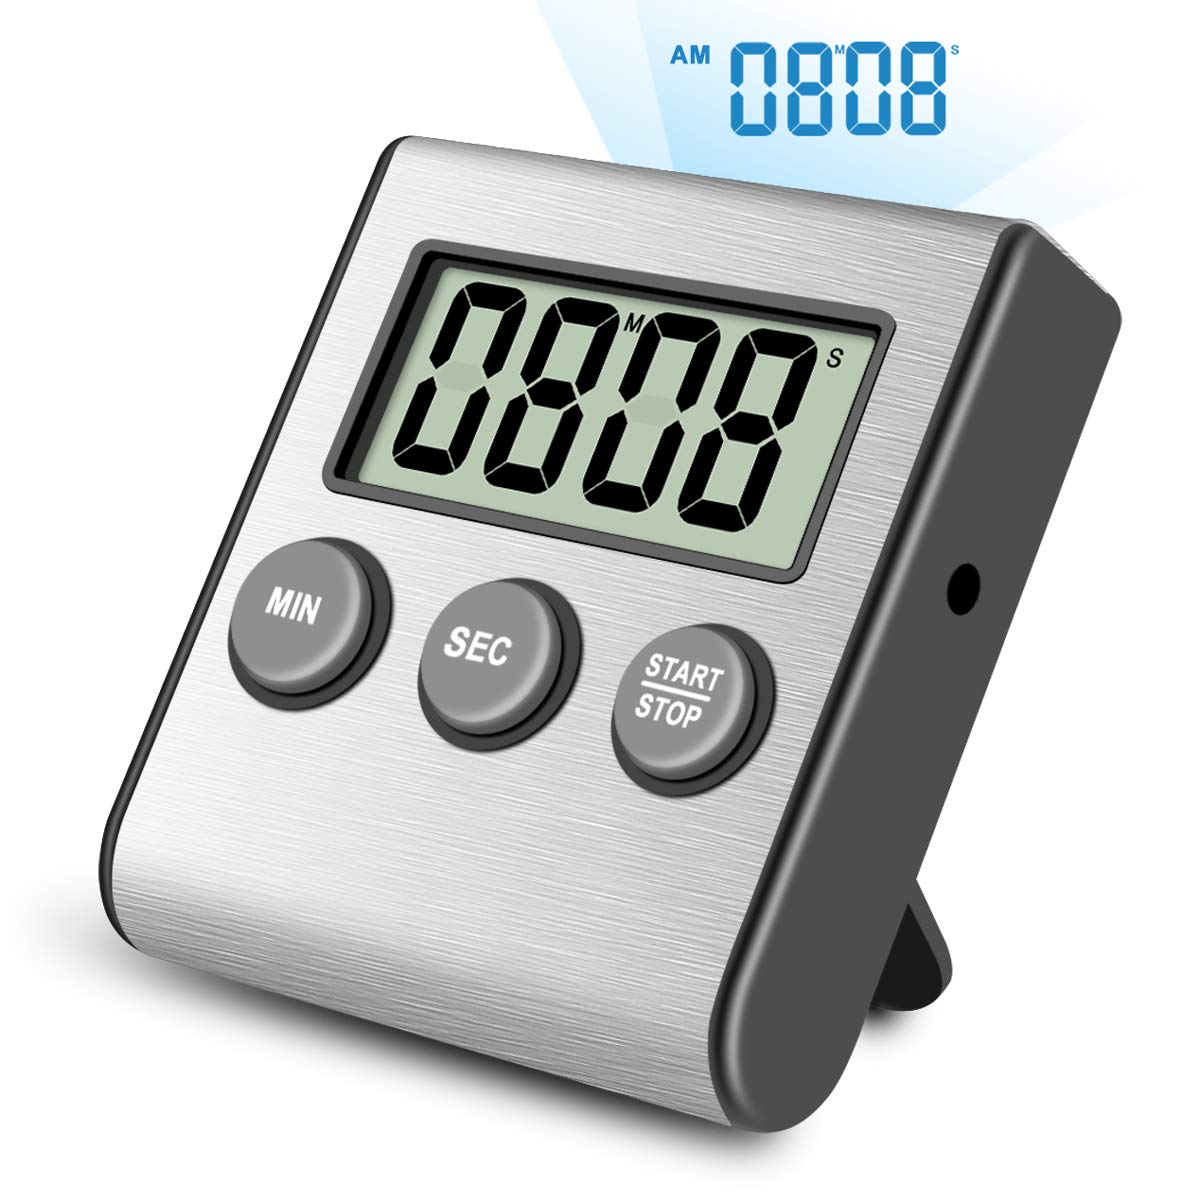 Digital Kitchen Timer,Super Strong Magnetic Back,Stainless Steel Shell,Large Display,Loud Alarm,Professional Minute Second Count Up and Countdown Timers for Cooking Sports Games.